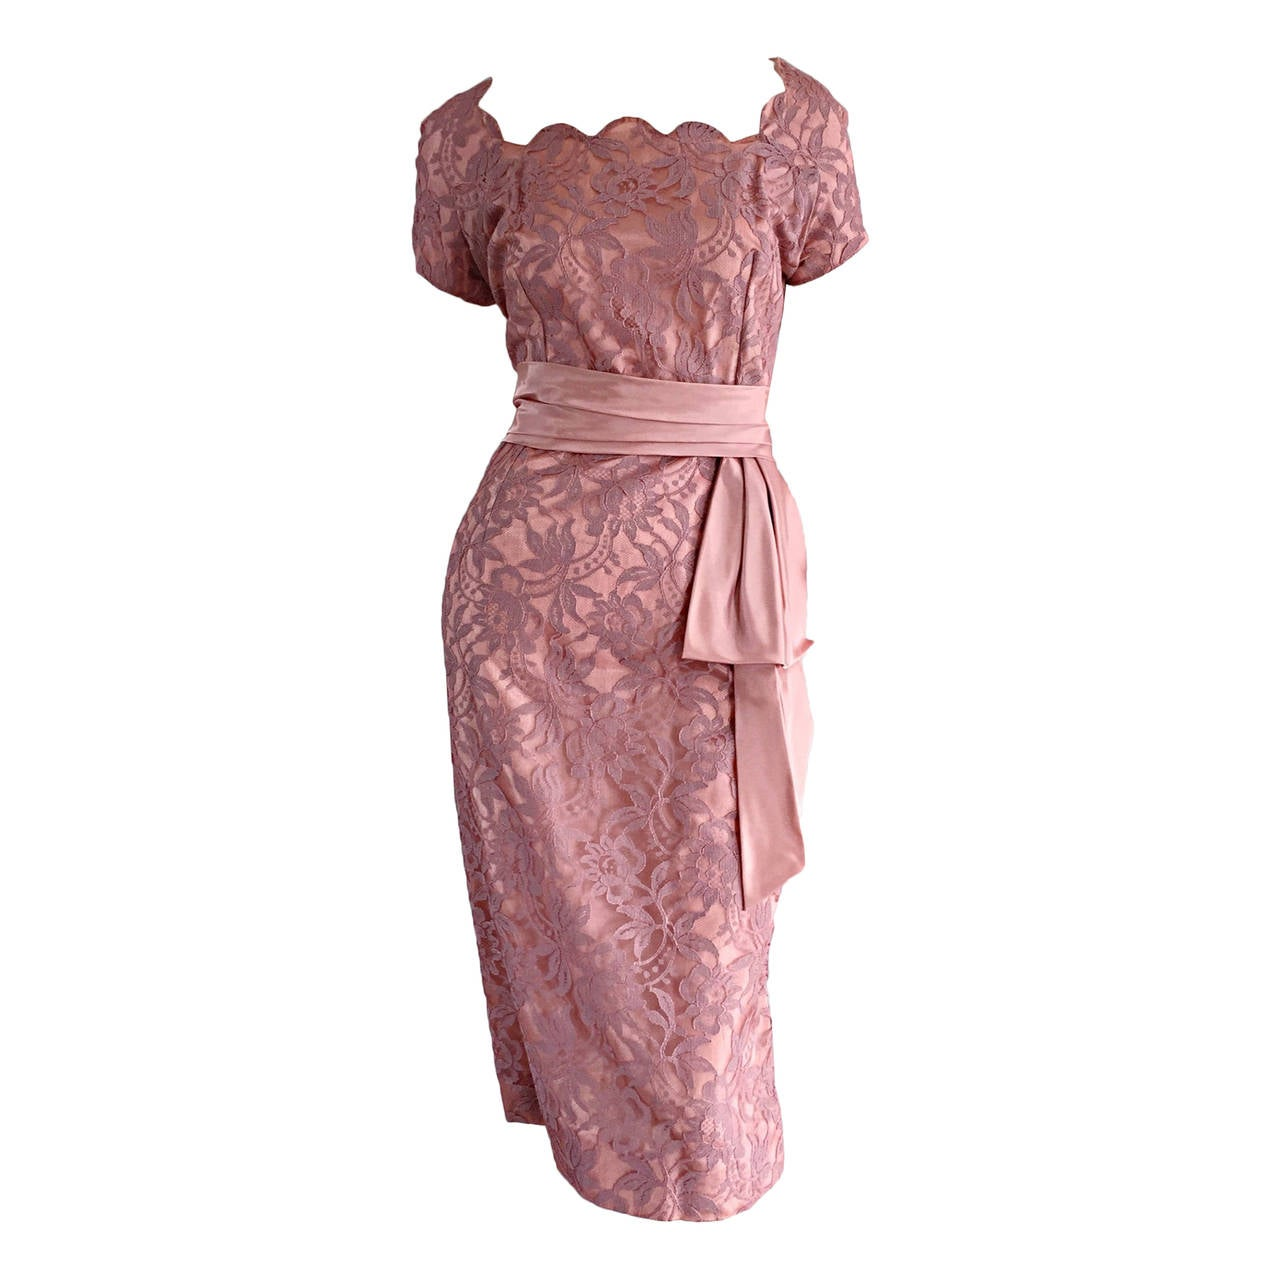 Beautiful Vintage 1950s 50s Pink Lace Wiggle Dress w/ Scalloped Edges 1